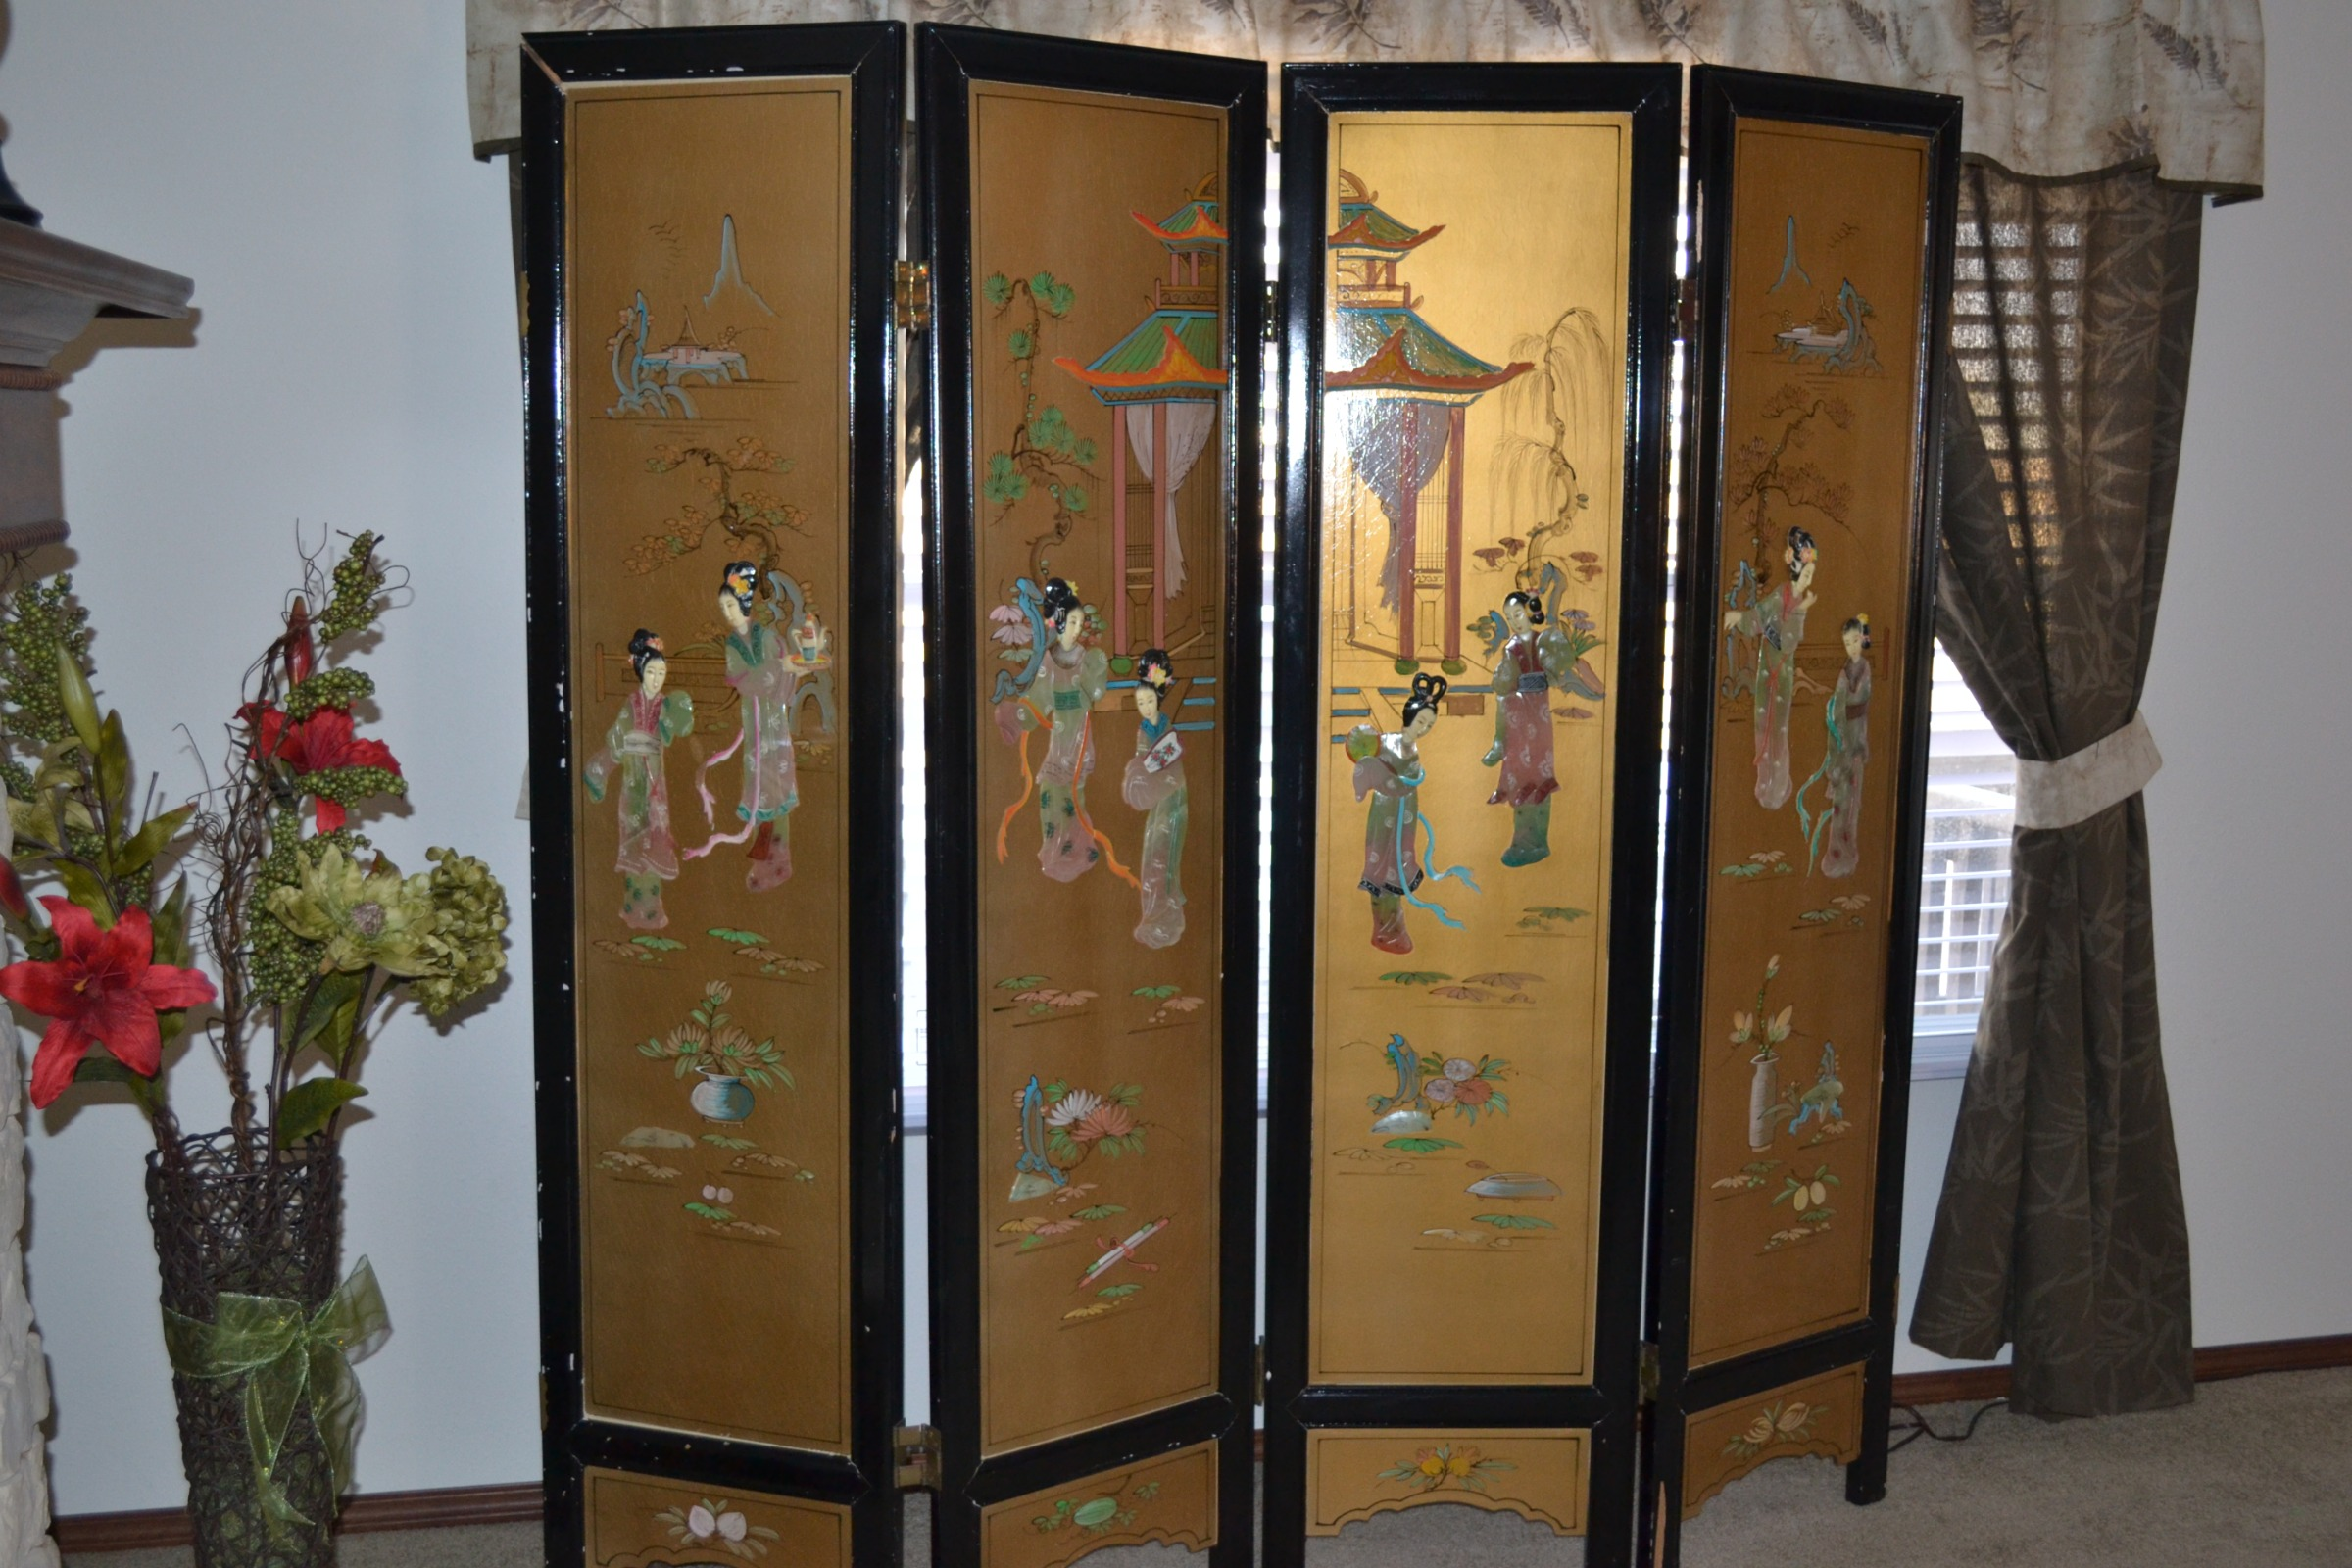 I Have A Hand Painted Japaneese Room Divider How Can I Find